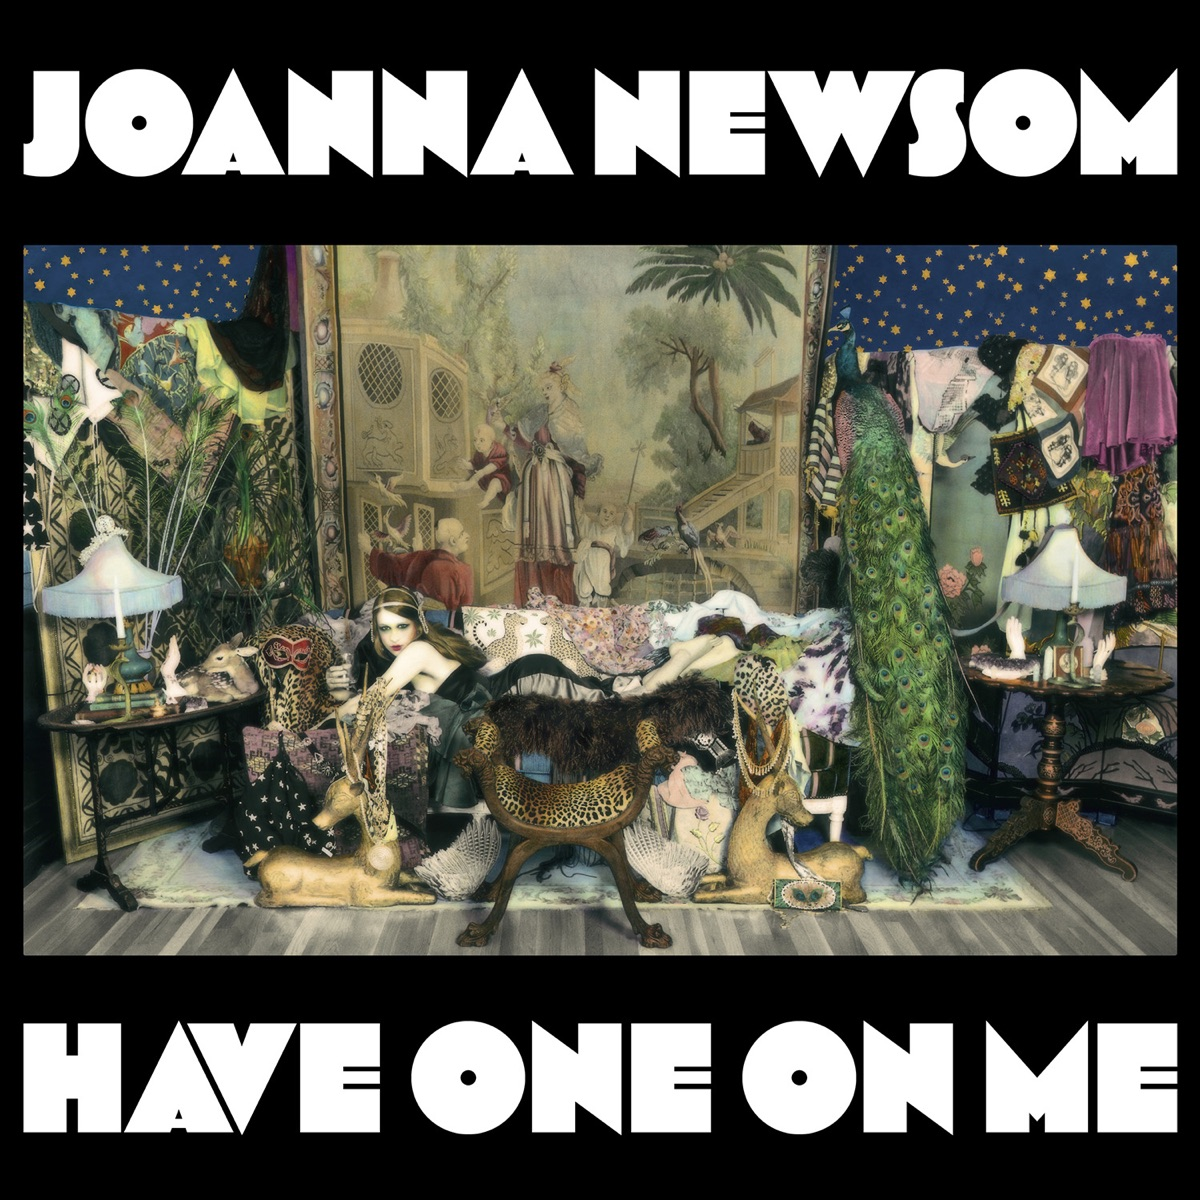 Have One On Me Joanna Newsom CD cover